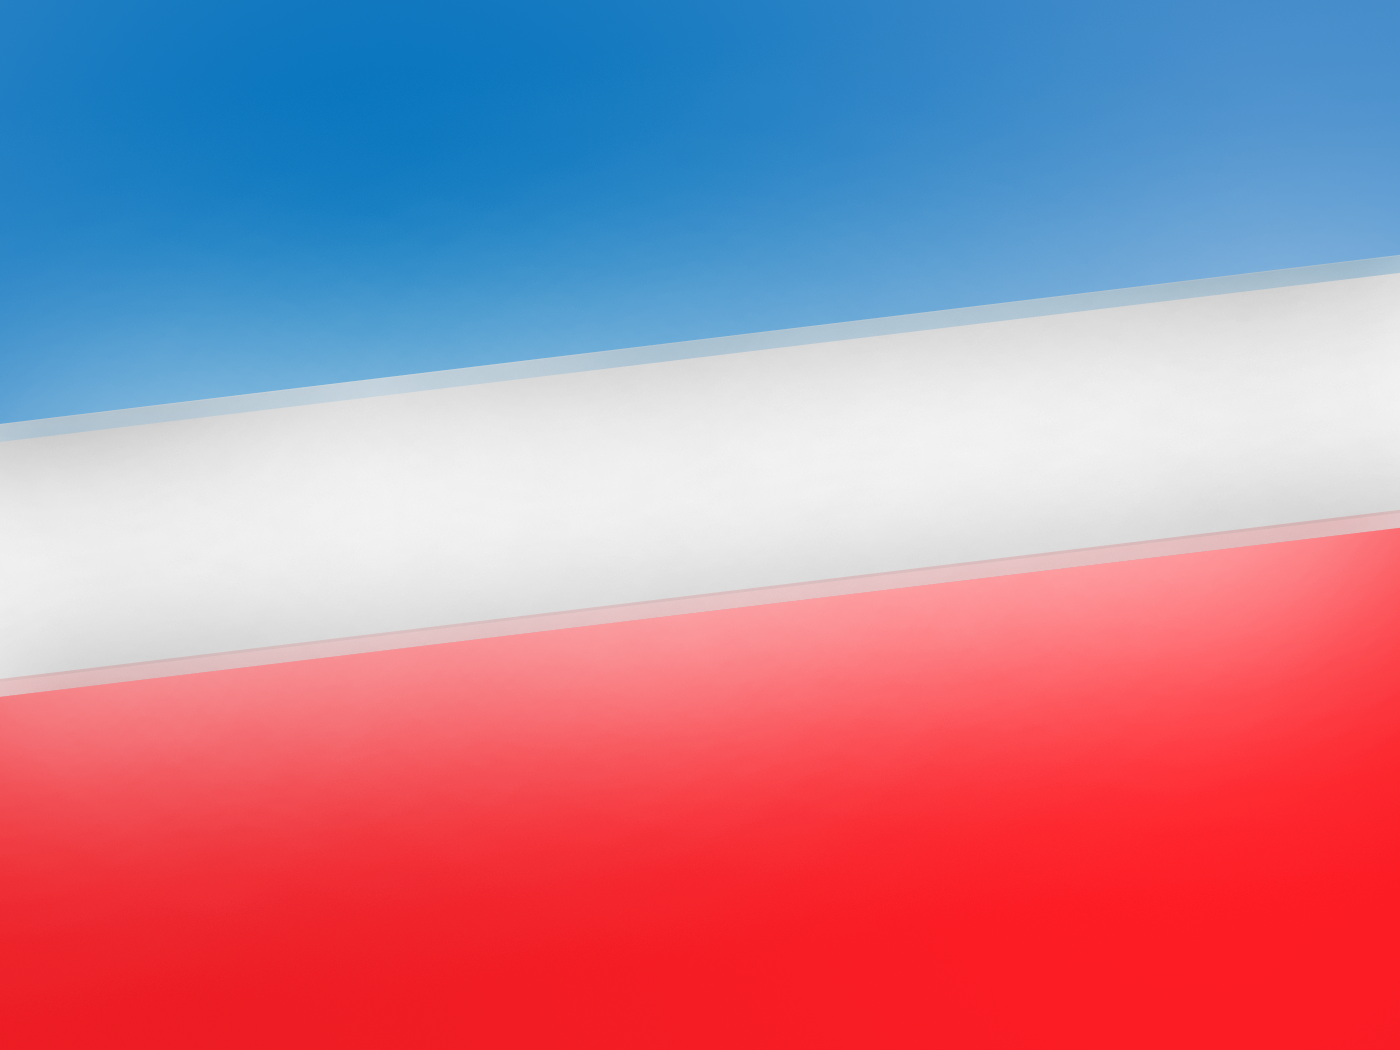 Wallpaper red white and blue by too fast on deviantart for Red white and blue wallpaper